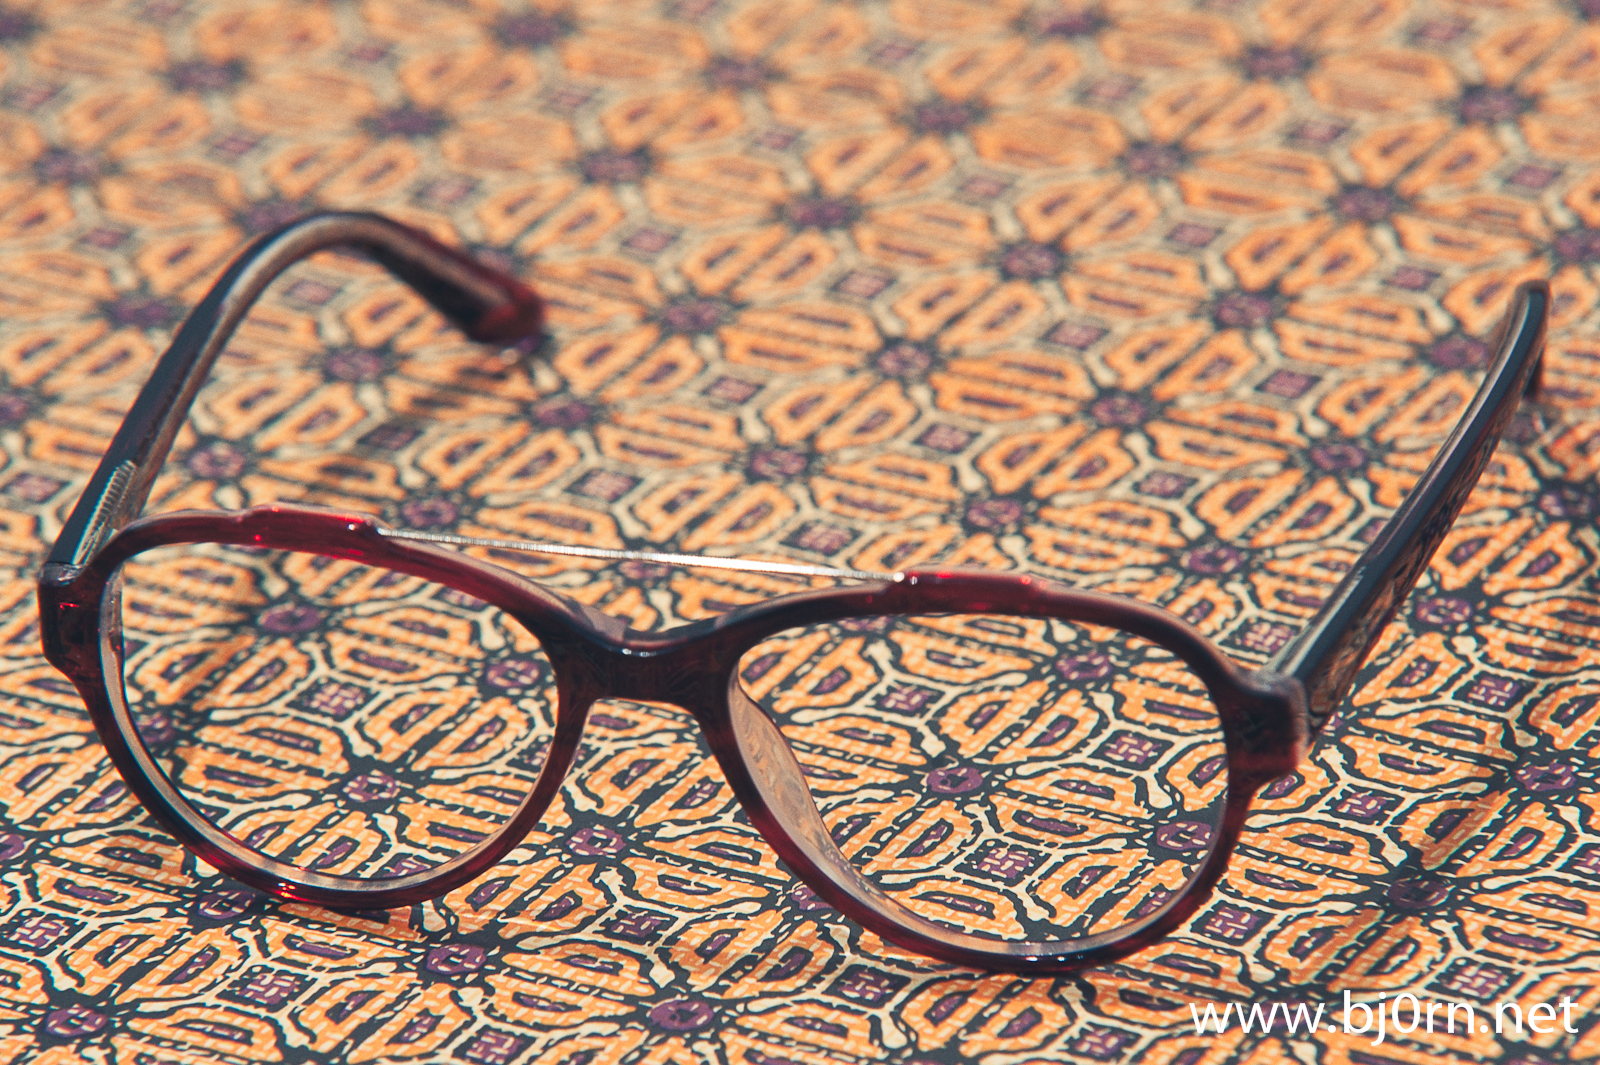 photo: Bjørn Christiansen, product photo of Spectacles. Moods of Norway and Lyle&Scott